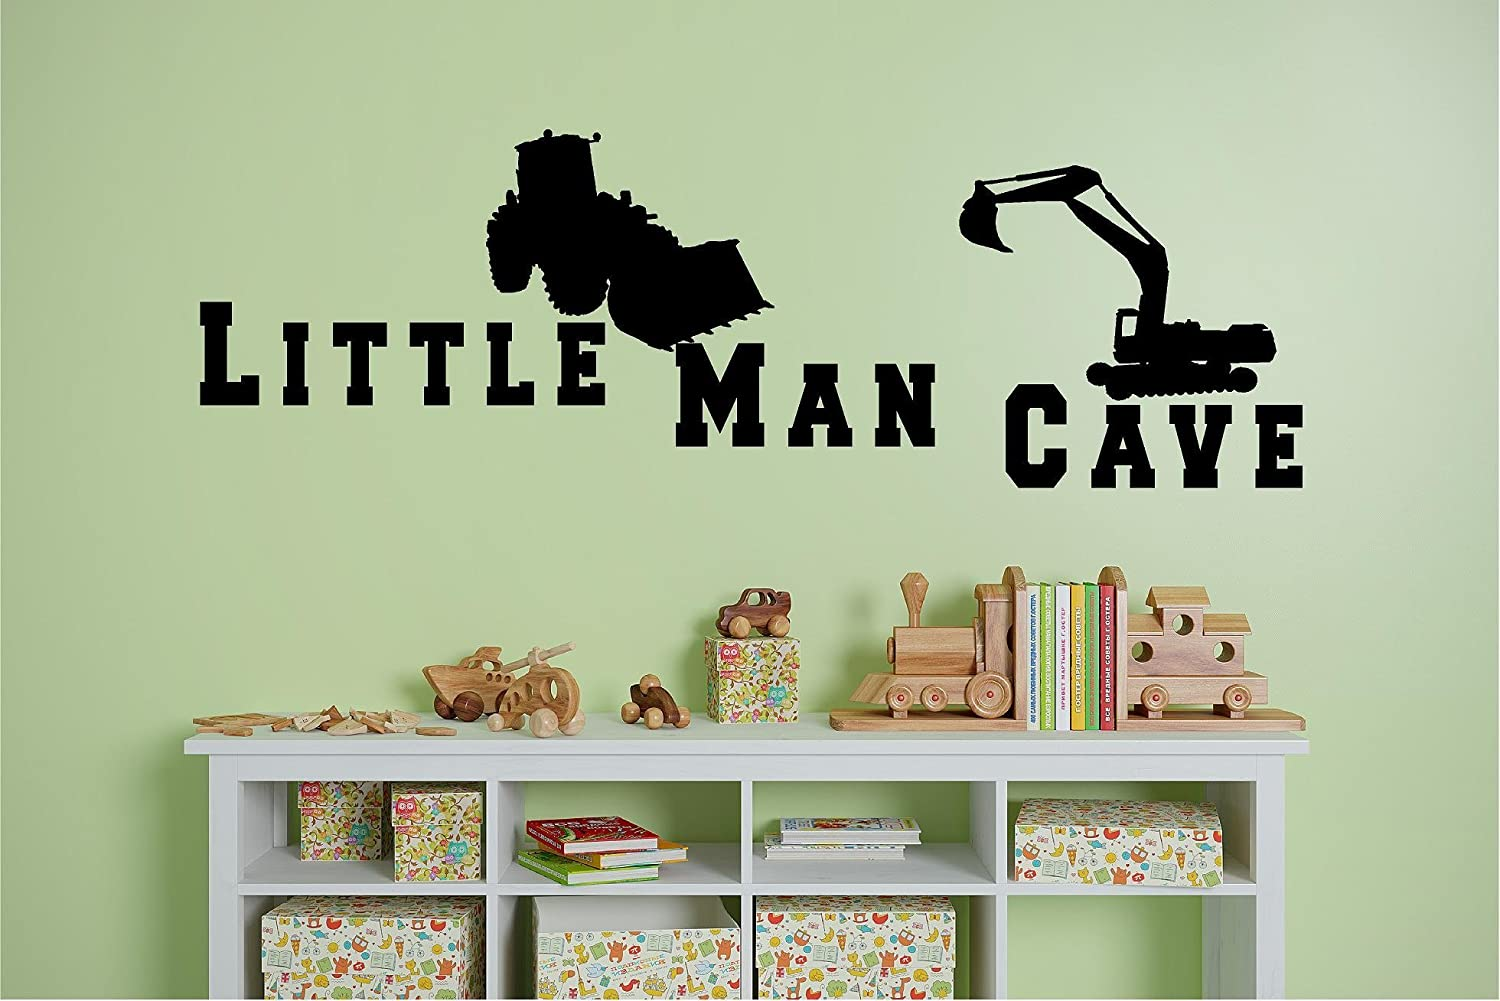 Little Man Cave Decal Childrens Wall Decal Boys Baby Bedroom Home Decor